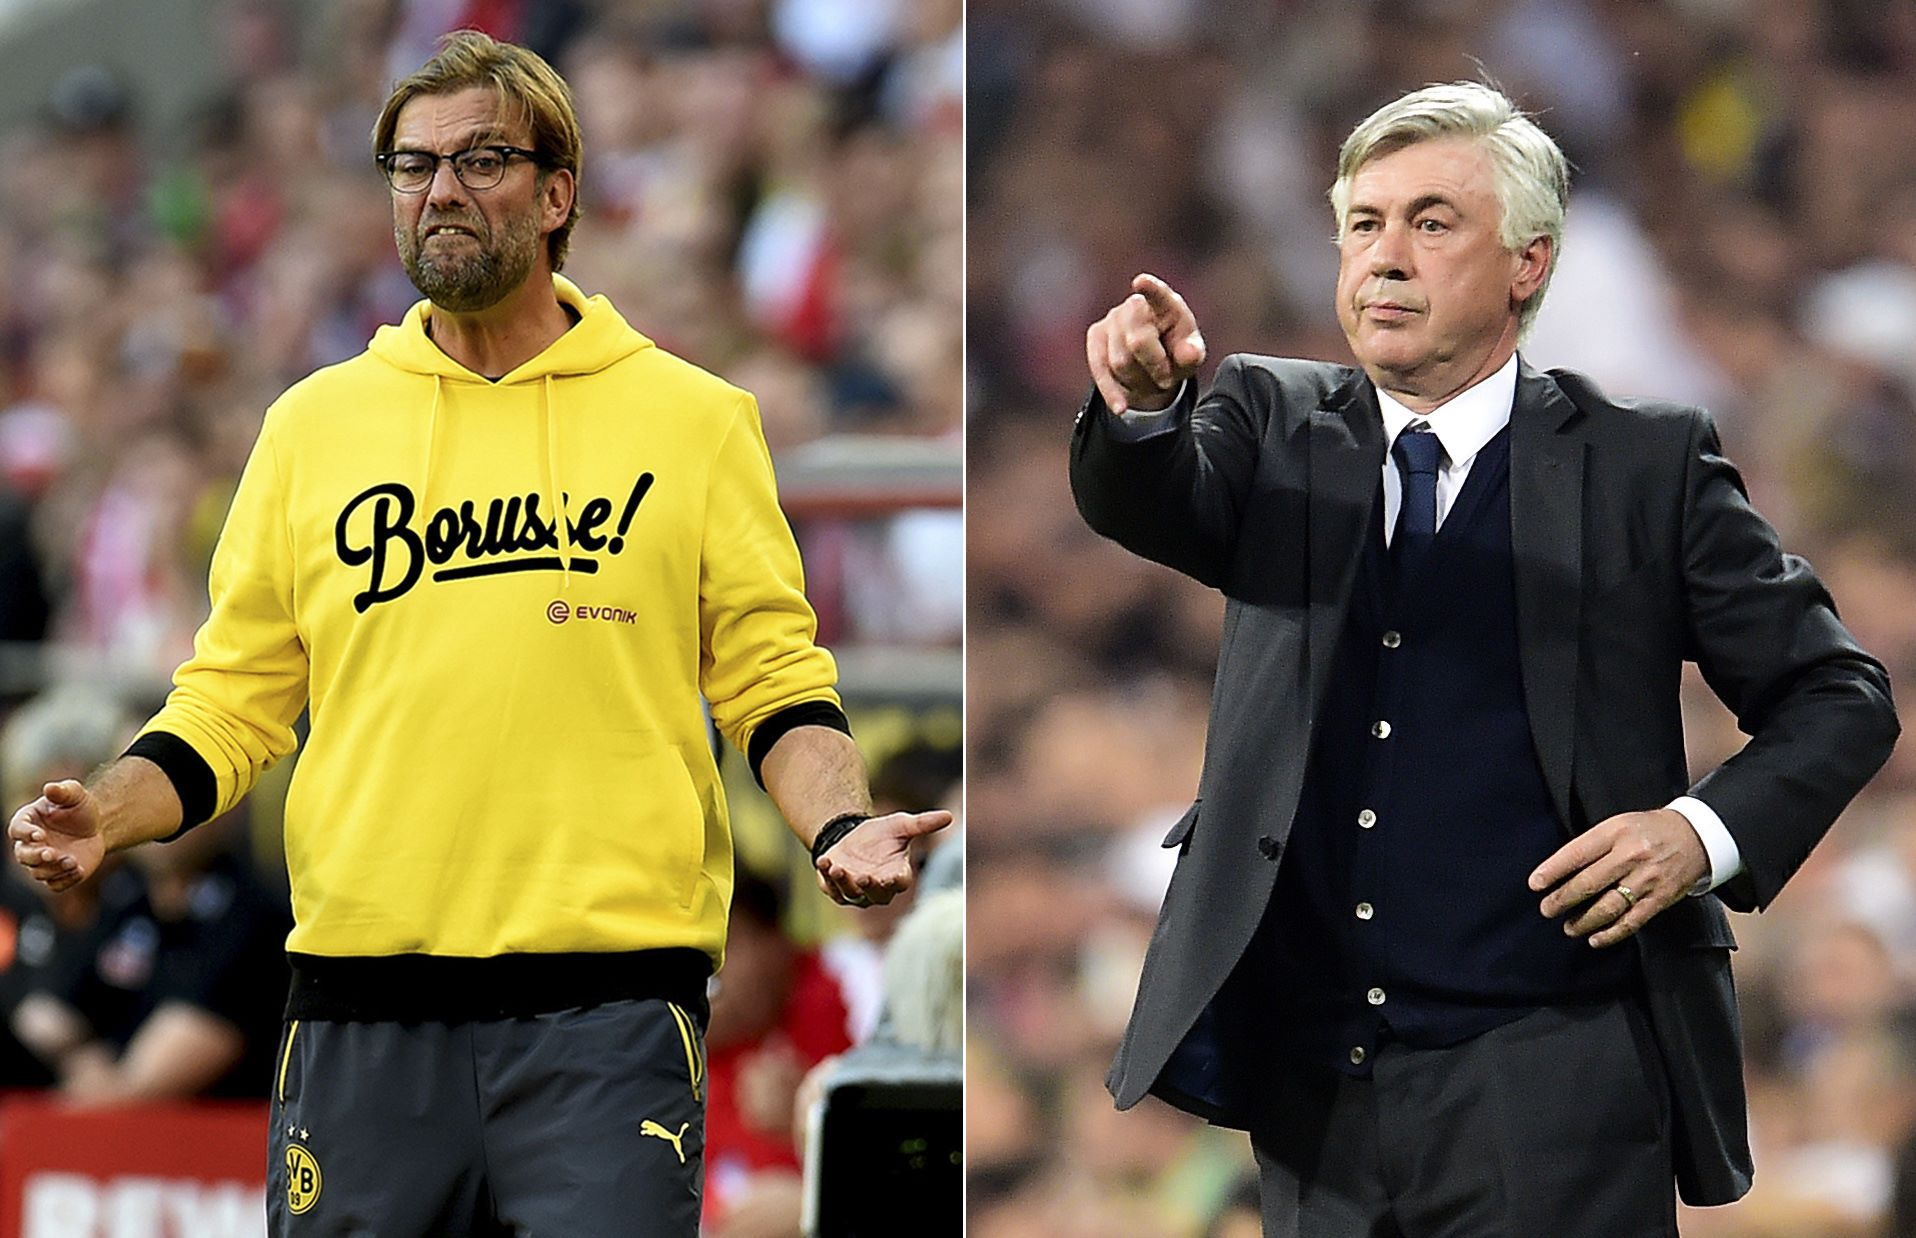 This combination picture shows former Borussia Dortmund coach Juergen Klopp (L) and former Real Madrid coach Carlo Ancelotti. Juergen Klopp and Carlo Ancelotti are the leading candidates to succeed sacked Liverpool manager Brendan Rodgers, according to reports in the British media on October 5, 2015.   AFP PHOTO/ GERARD JULIEN